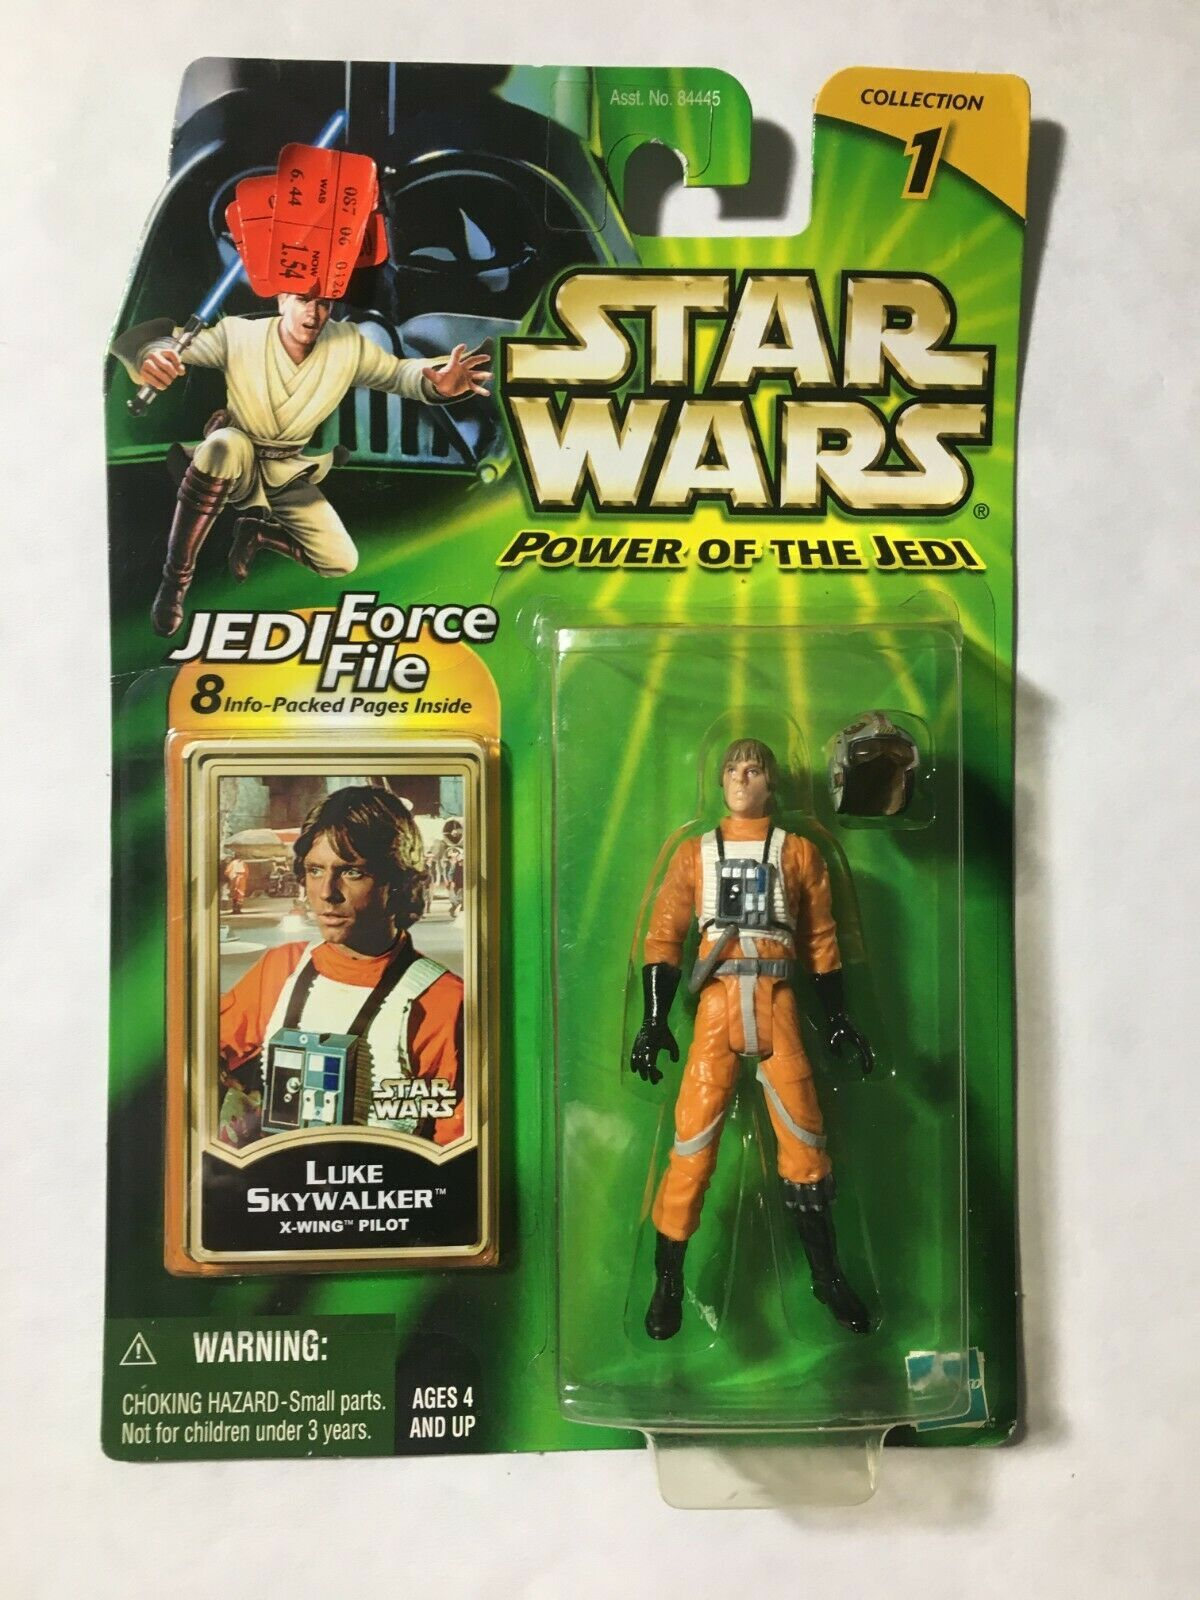 Primary image for Star Wars 2000 POTJ Collection 1 Luke Skywalker X-Wing Pilot Green Card